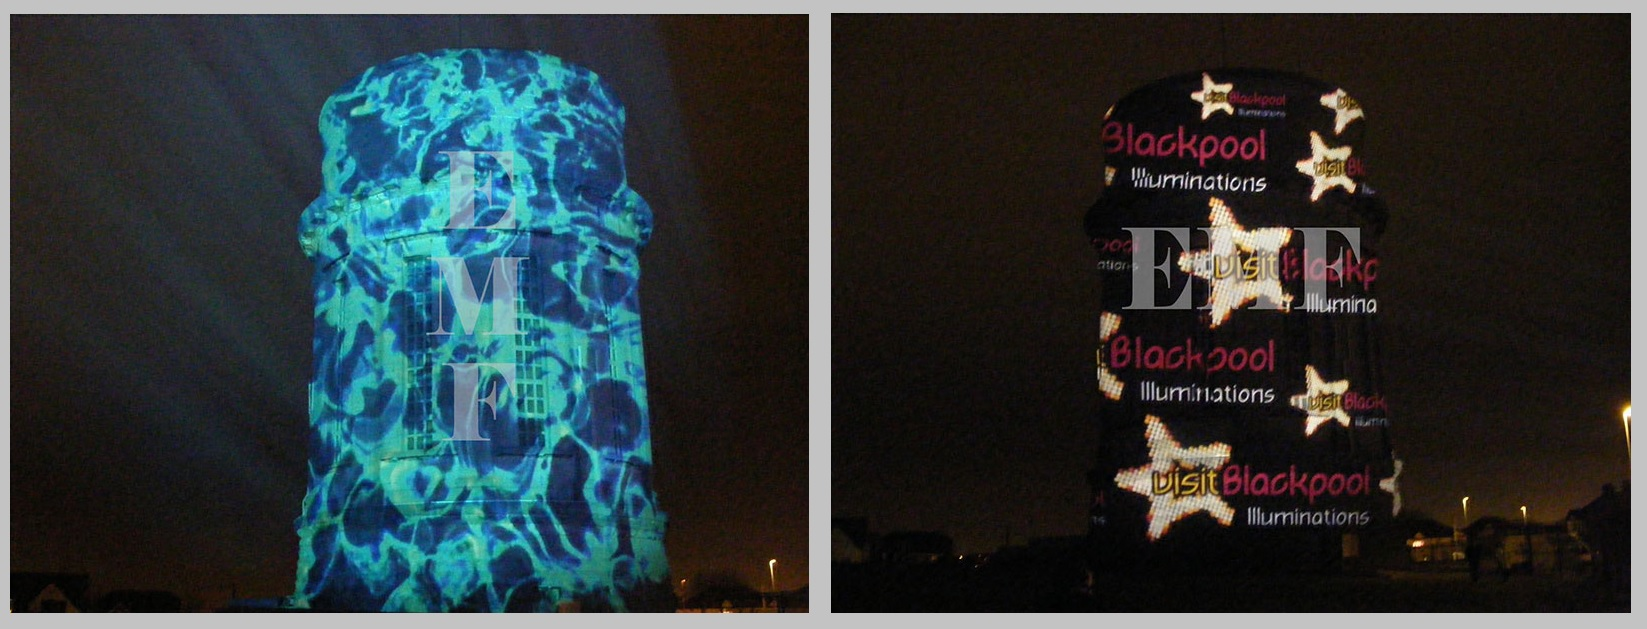 Blackpool Illuminations Visit Blackpool Projection Campaign